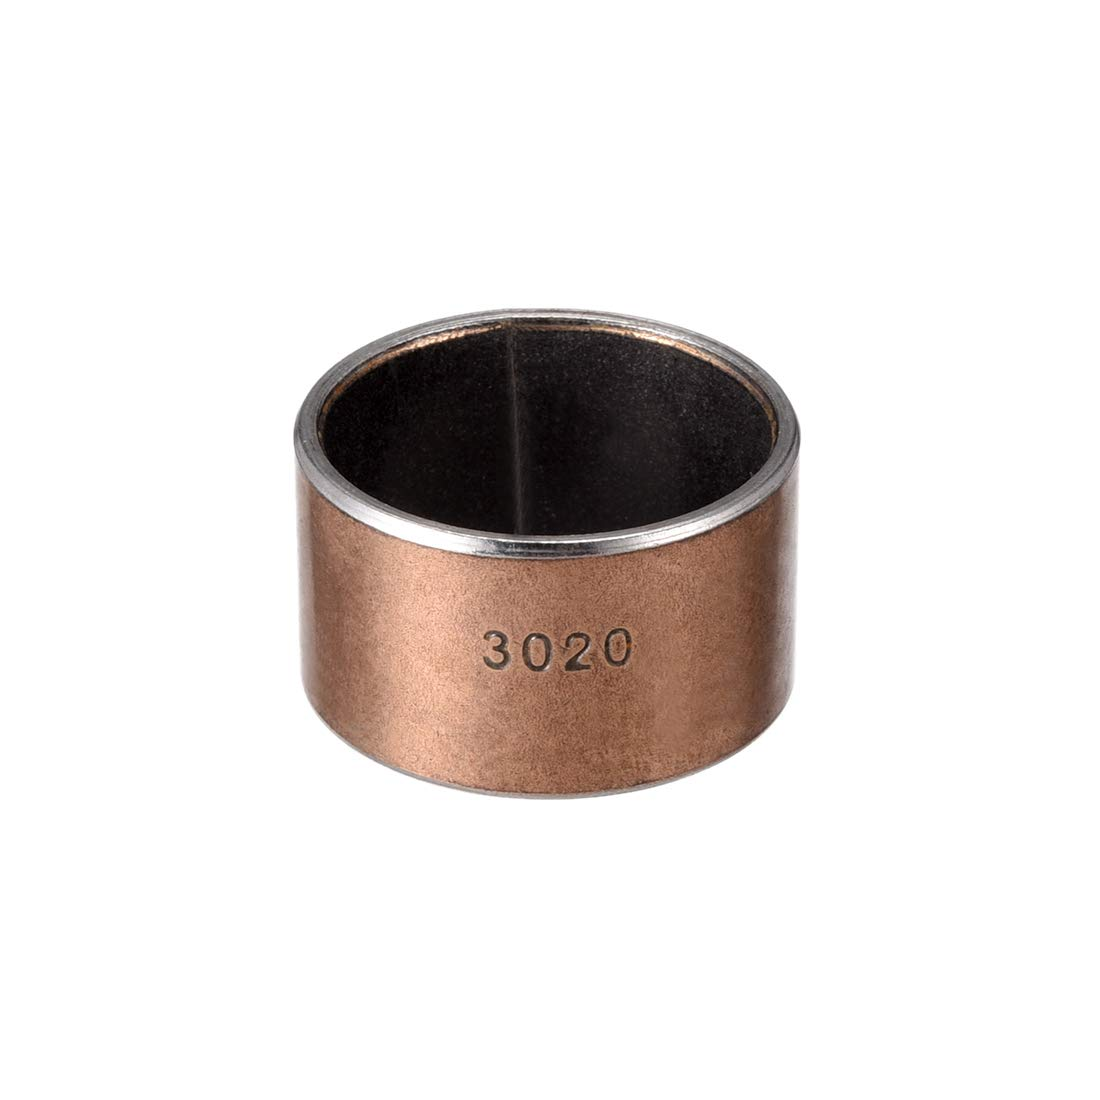 sourcing map Sleeve (Plain) Bearings, 30mm Bore x 34mm OD x 20mm Length Wrapped Oilless Bushings (Pack of 1)